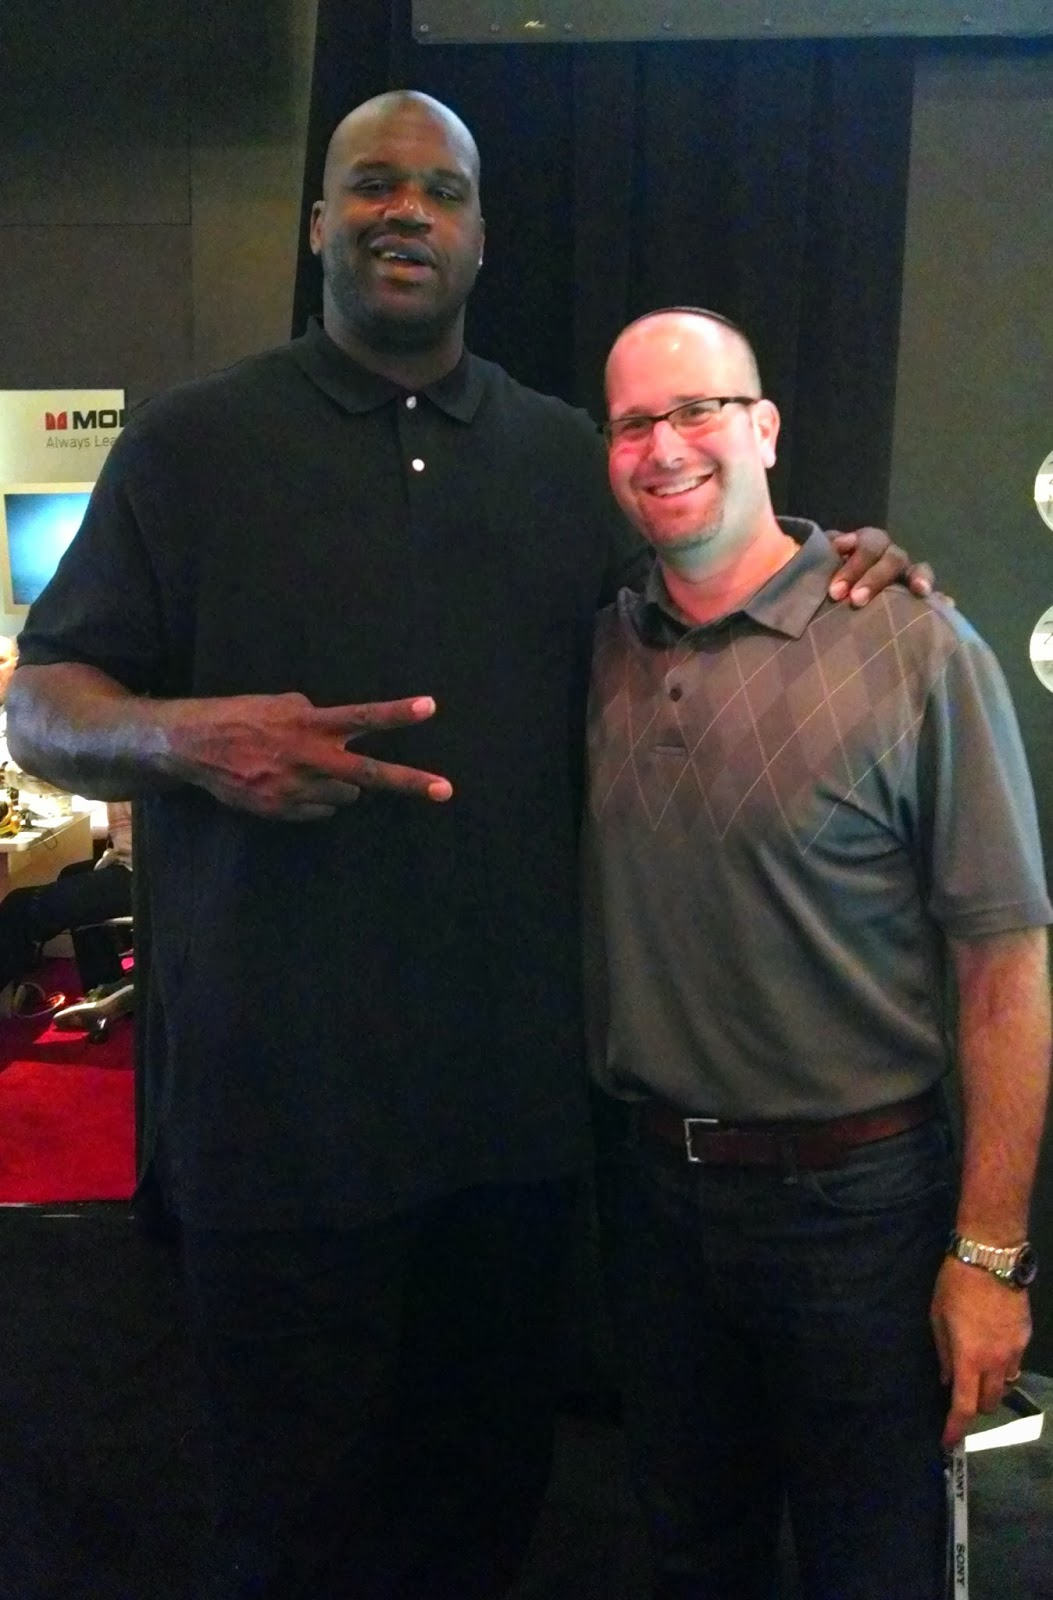 Shaquille O'Neal with Rabbi Jason - Shaq Speaks Hebrew